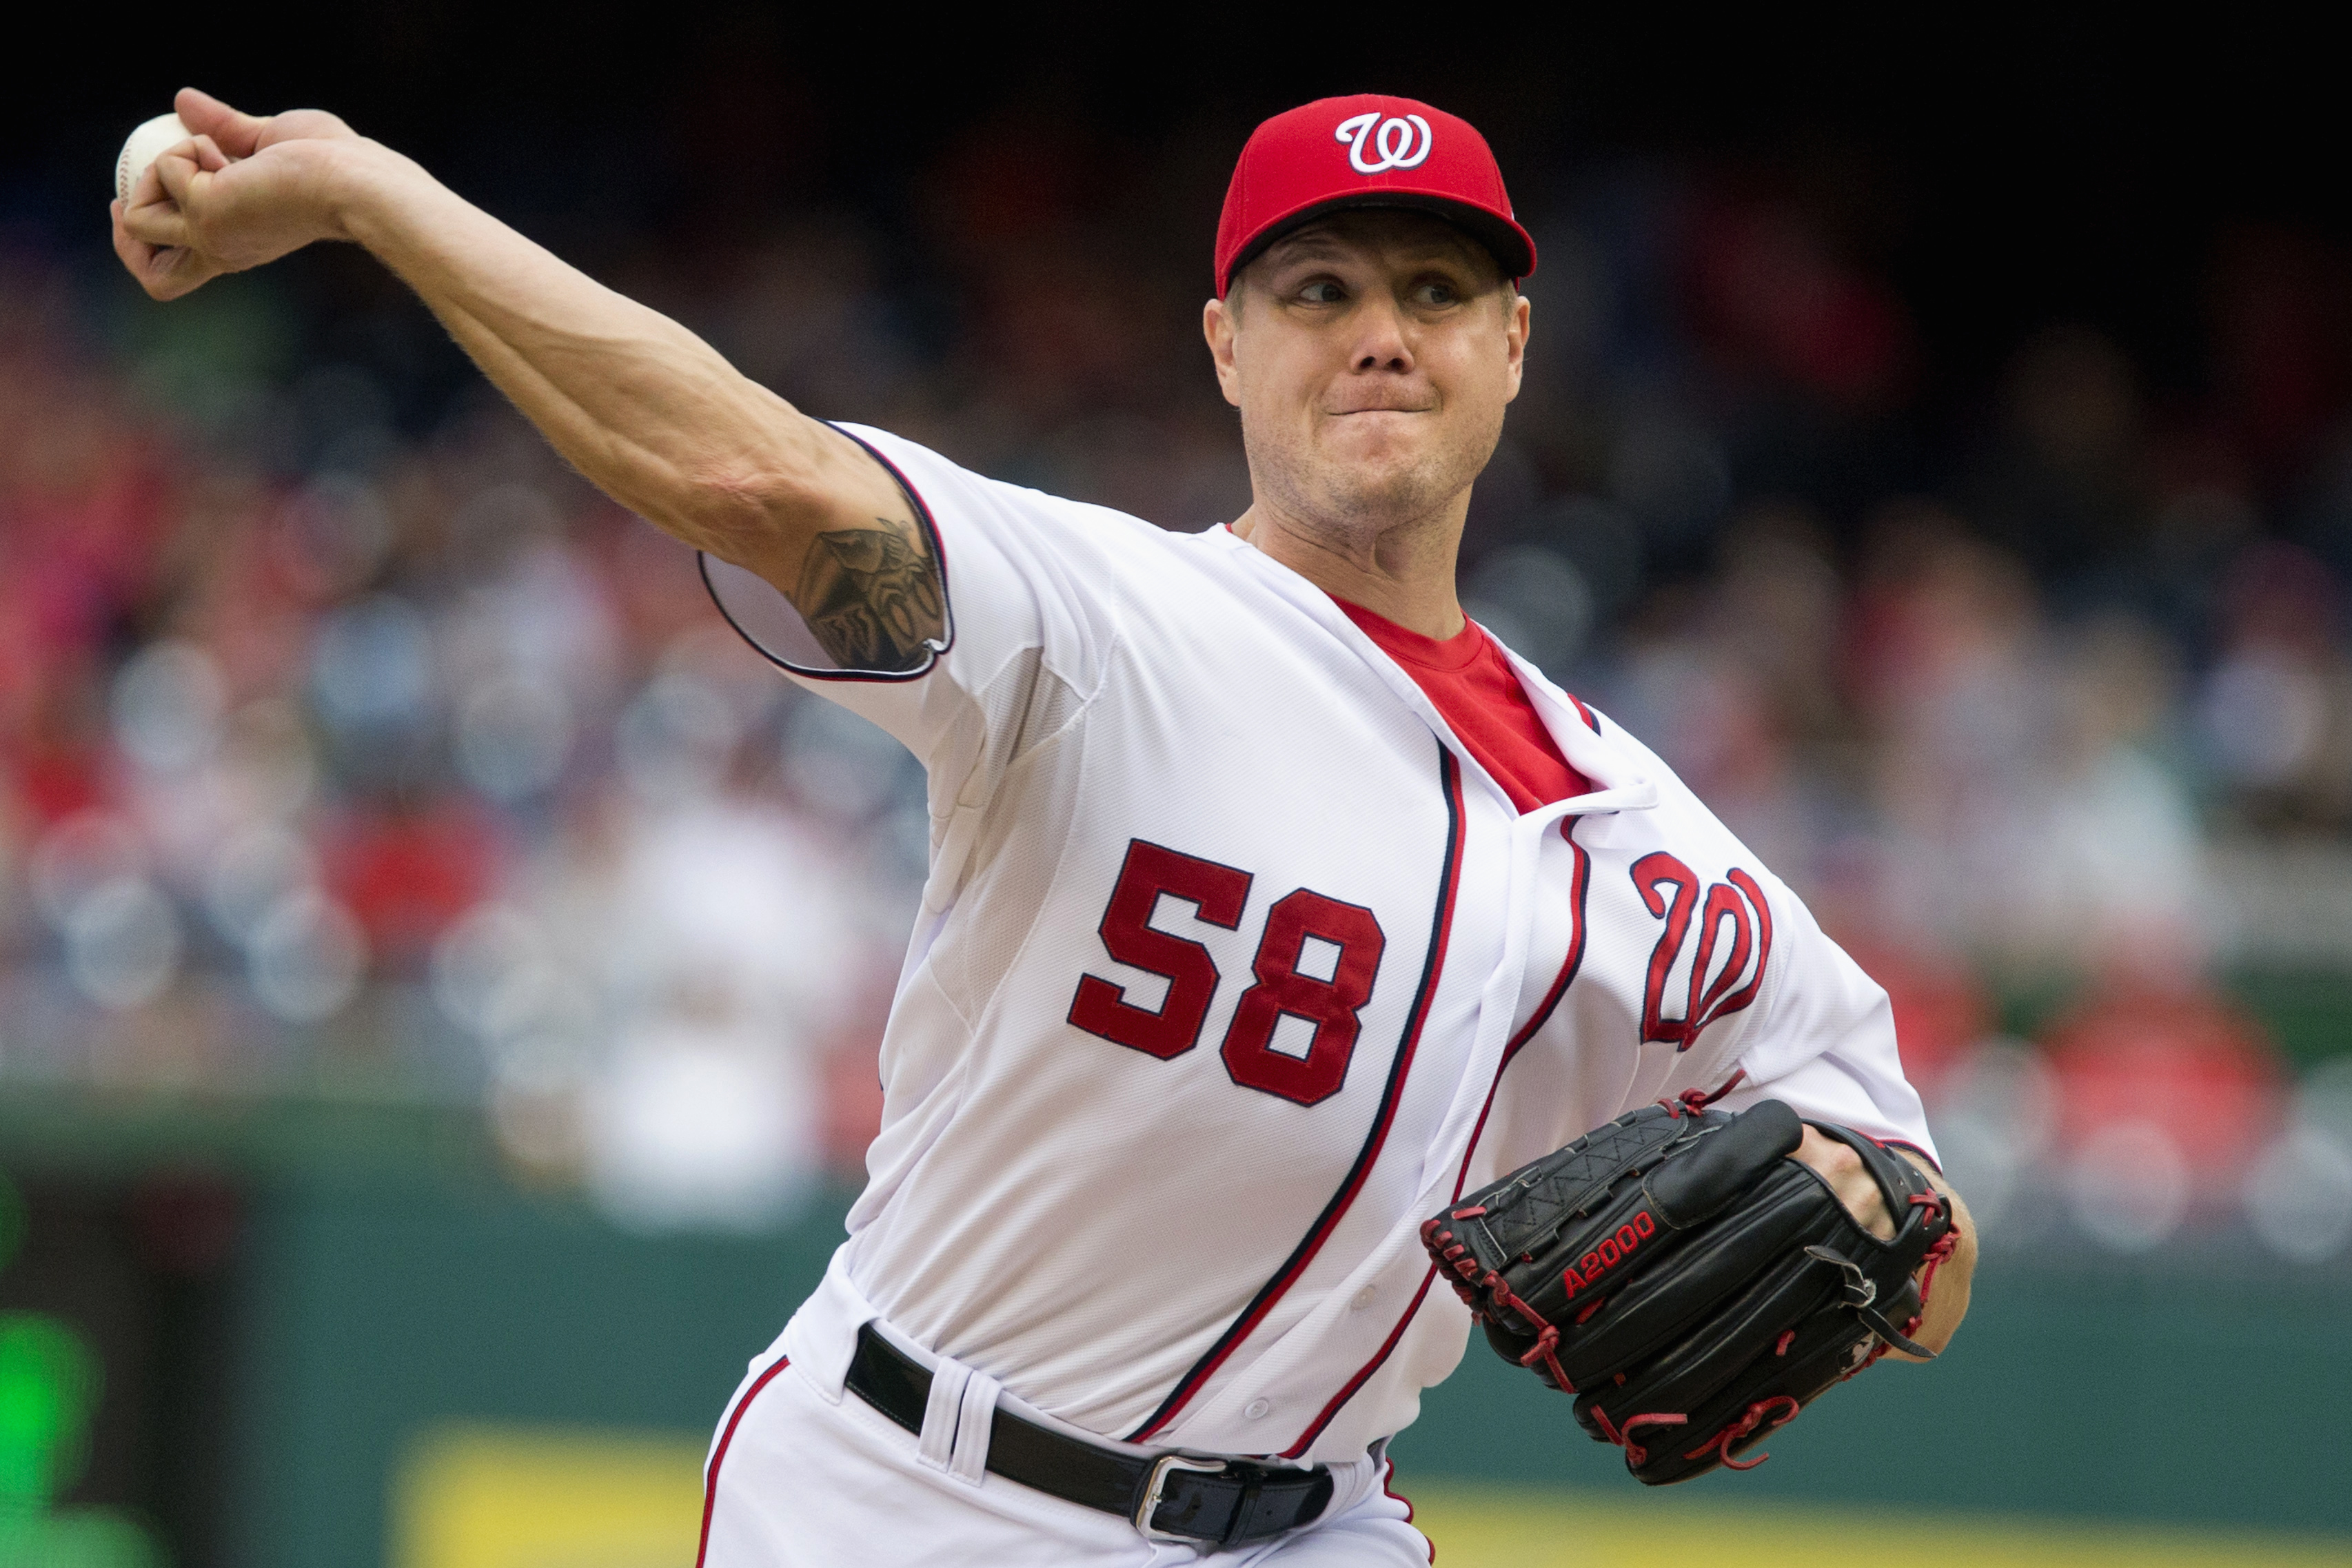 FILE - In this Sept. 27, 2015 file photo, Washington Nationals relief pitcher Jonathan Papelbon pitches against the Philadelphia Phillies at Nationals Park in Washington. The Nationals hope to become a good team again, but Papelbon being back with the Nat